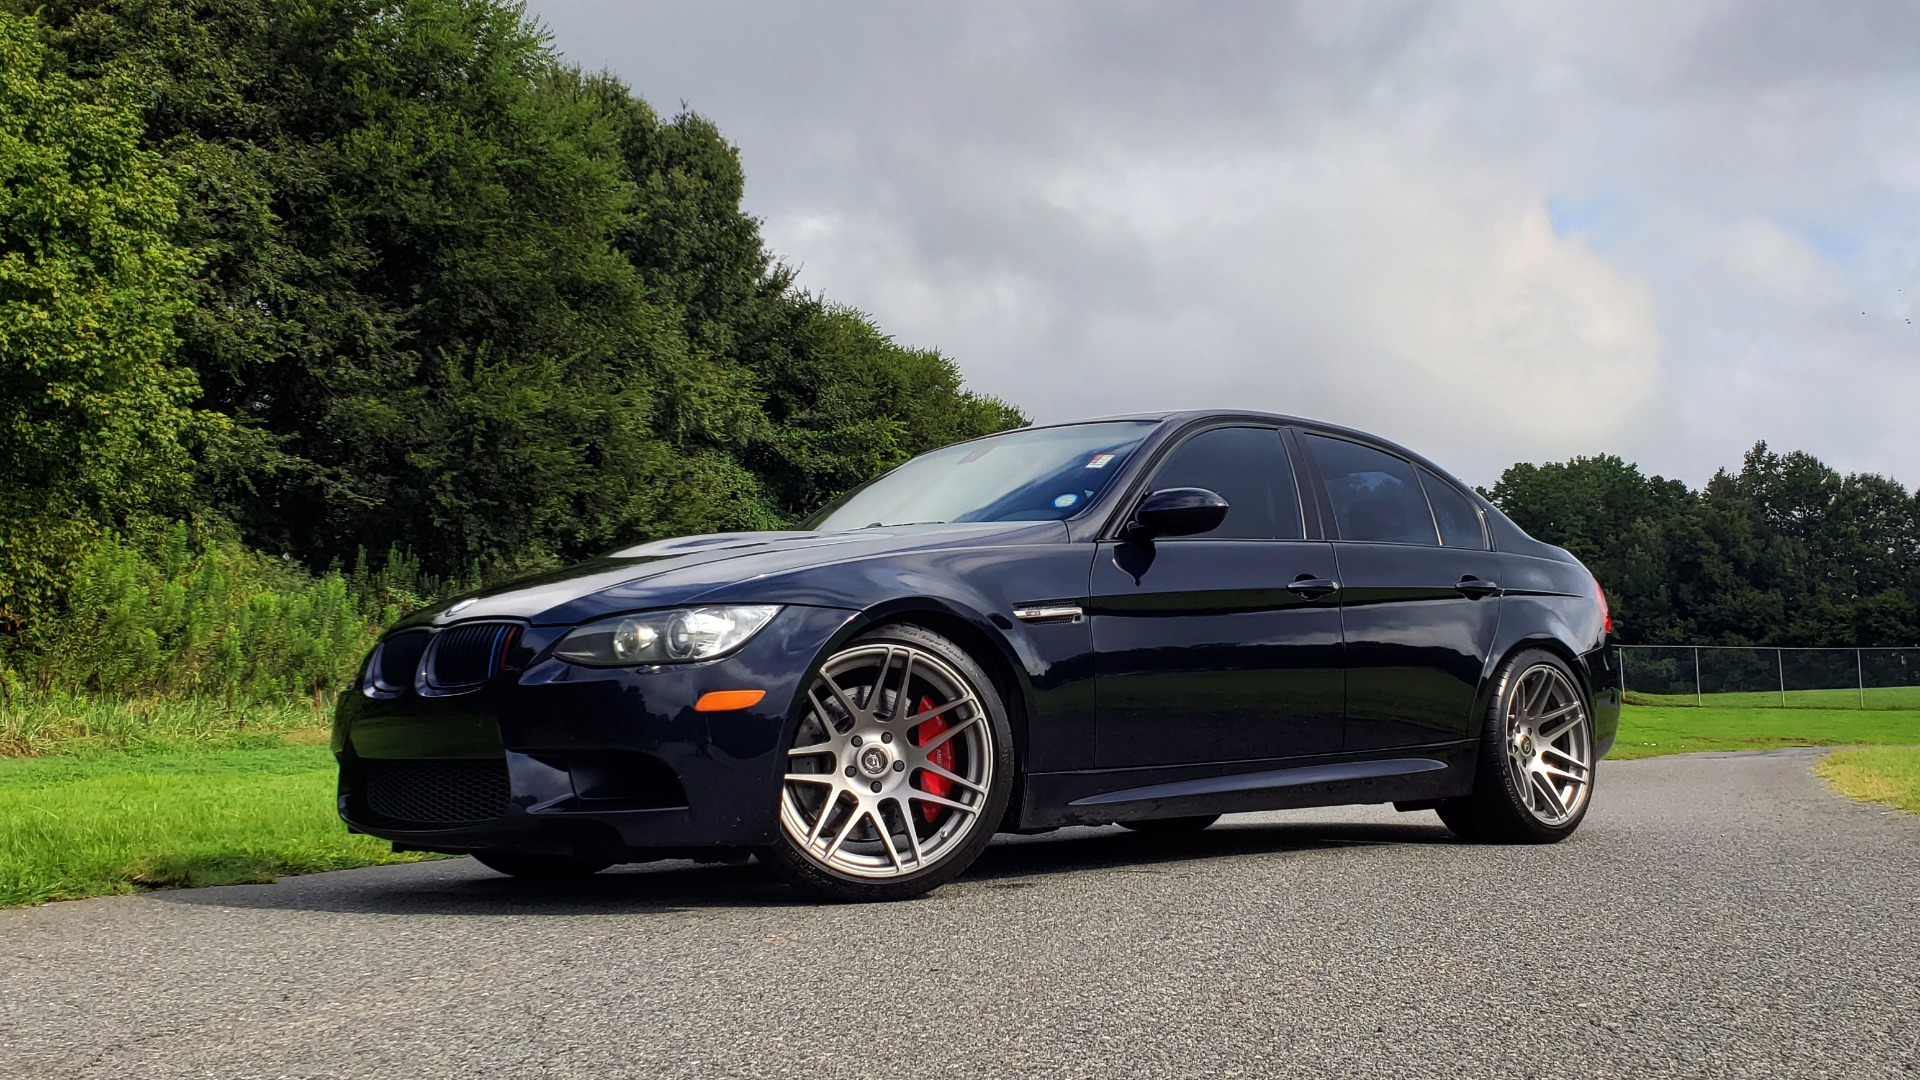 Used 2008 BMW 3 SERIES M3 PREMIUM / TECH / PDC / SUNROOF / 4.0L V8 / 6-SPD MANUAL for sale Sold at Formula Imports in Charlotte NC 28227 2